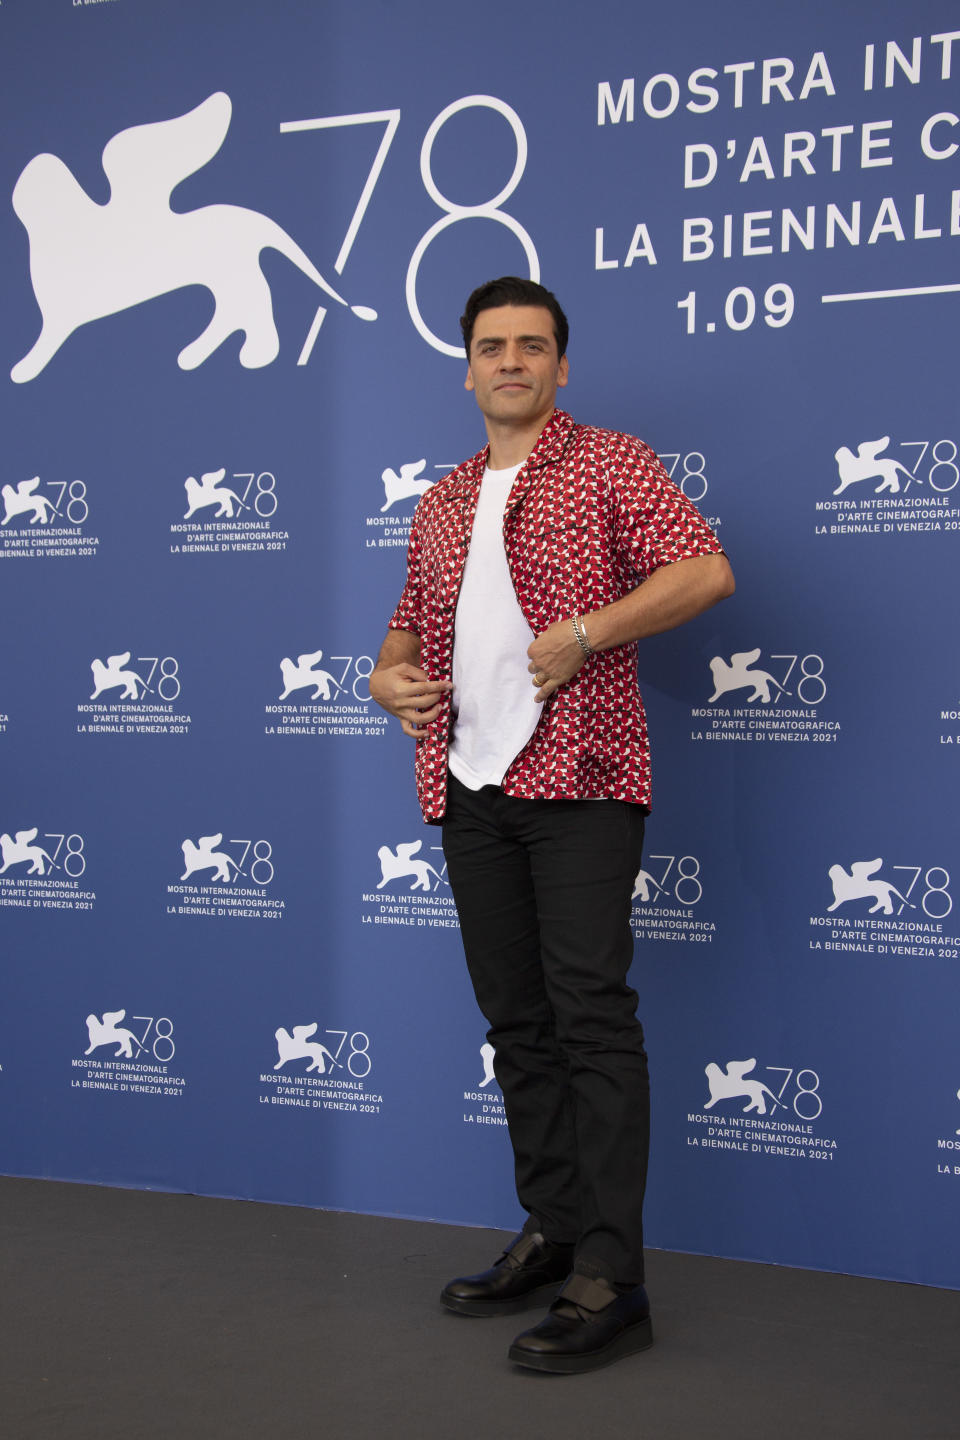 Oscar Isaac poses for photographers at the photo call for the film 'Scenes of a Marriage' during the 78th edition of the Venice Film Festival in Venice, Italy, Saturday, Sep, 4, 2021. (Photo by Joel C Ryan/Invision/AP)